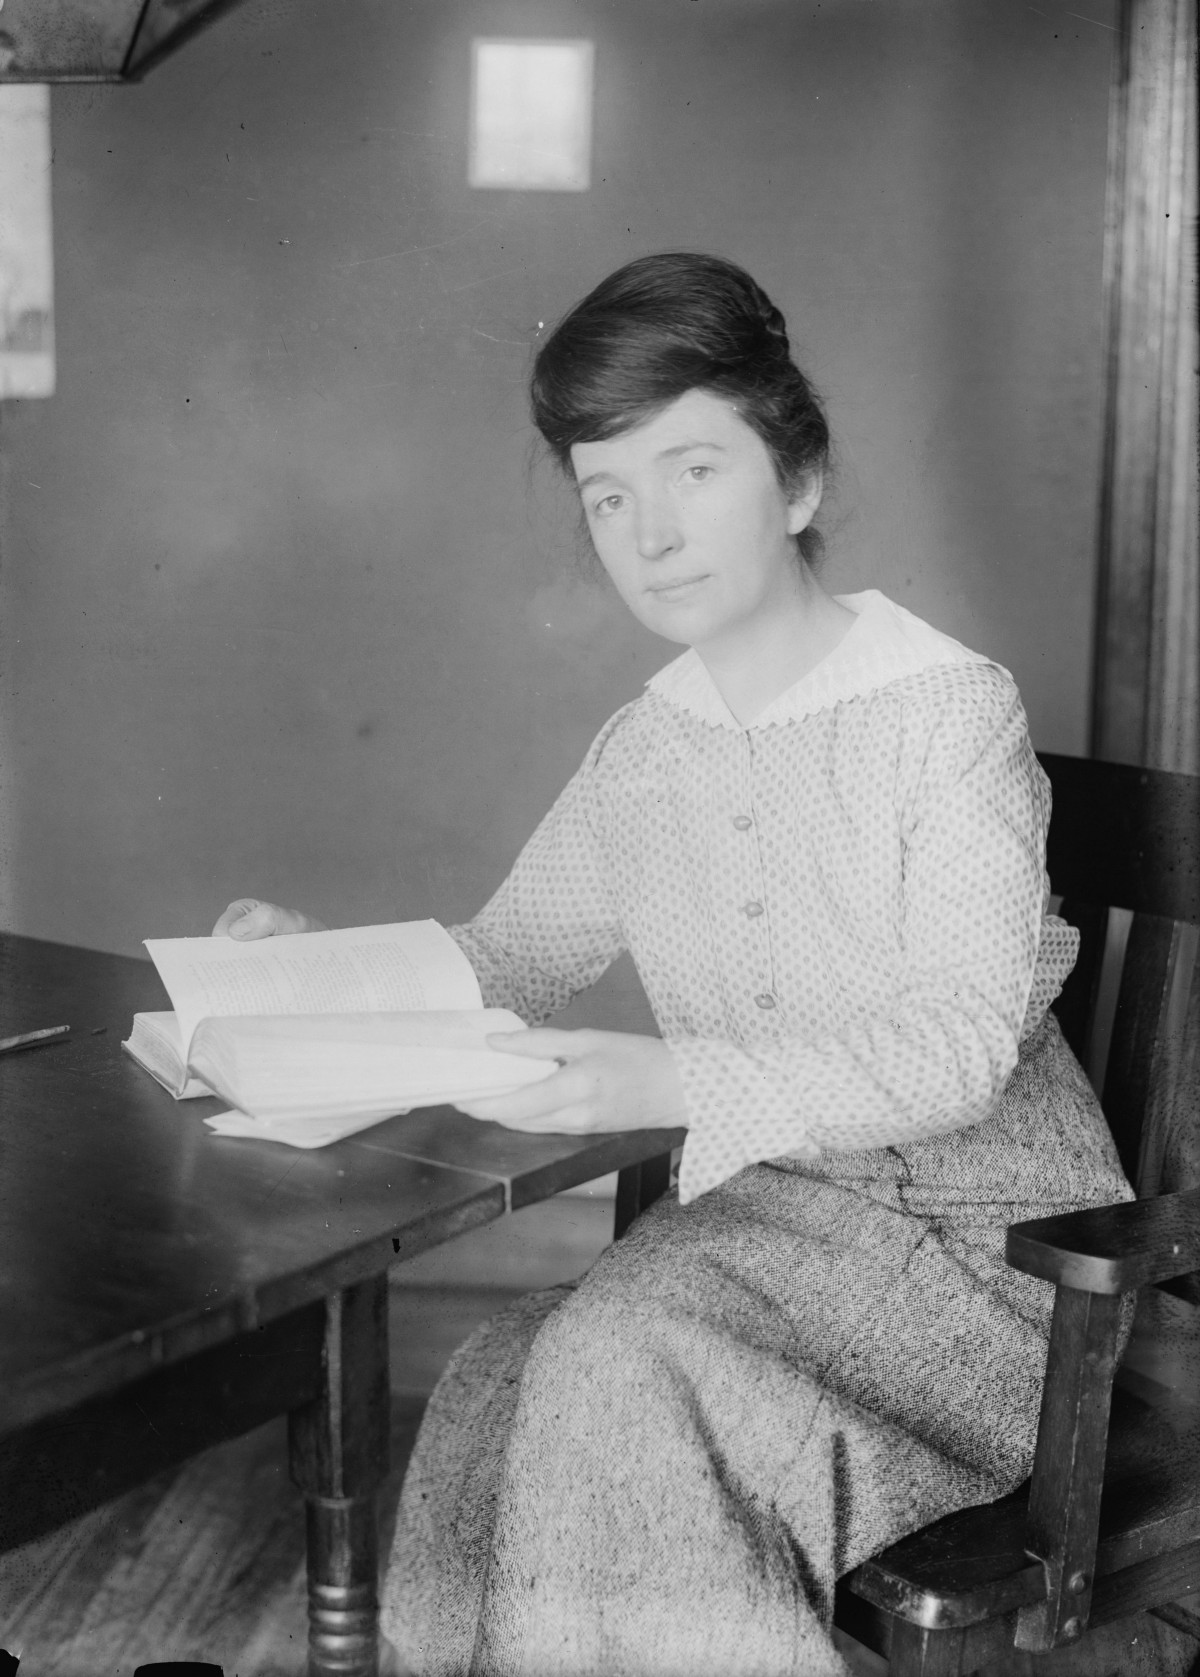 an introduction to the life of margaret sanger Woman rebel: the margaret sanger story, a biography of the birth-control activist who defied the comstock laws in the first half of the 20th century, is an unlikely but inspired pairing of author and subject.